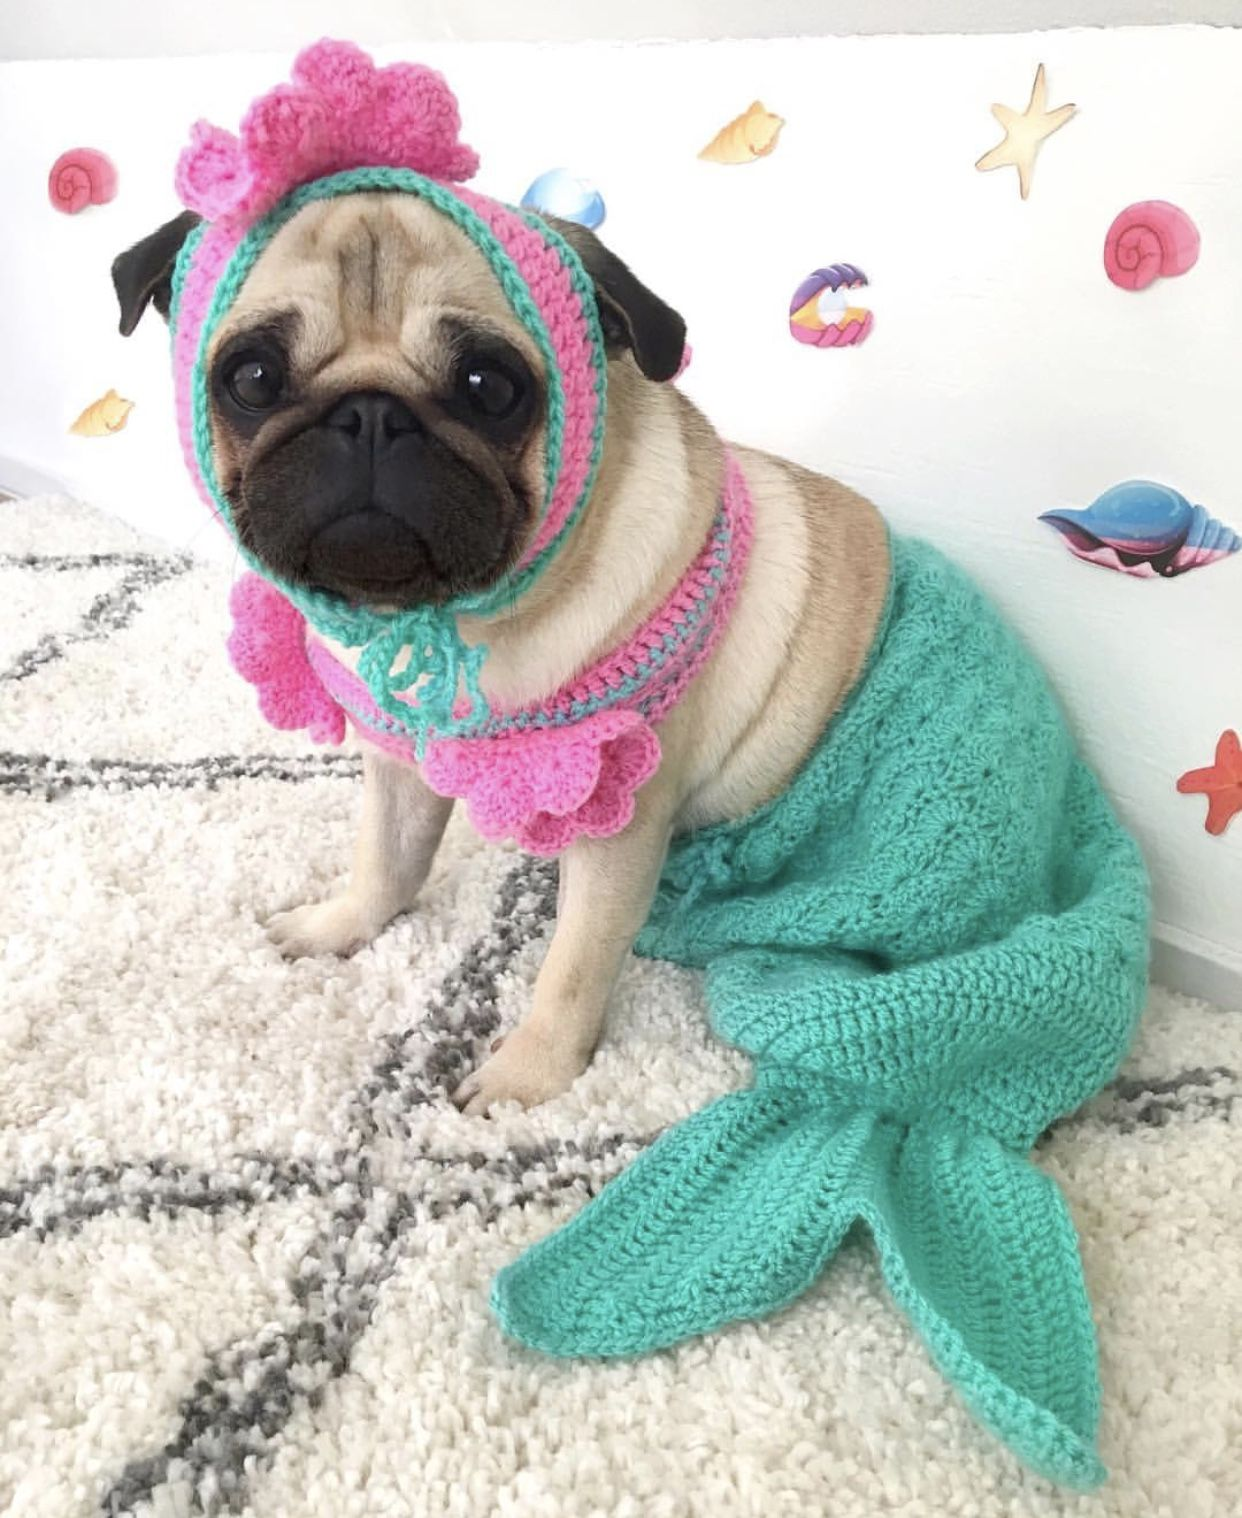 Mermaid Halloween Dog Costume Cute Pugs Pugs In Costume